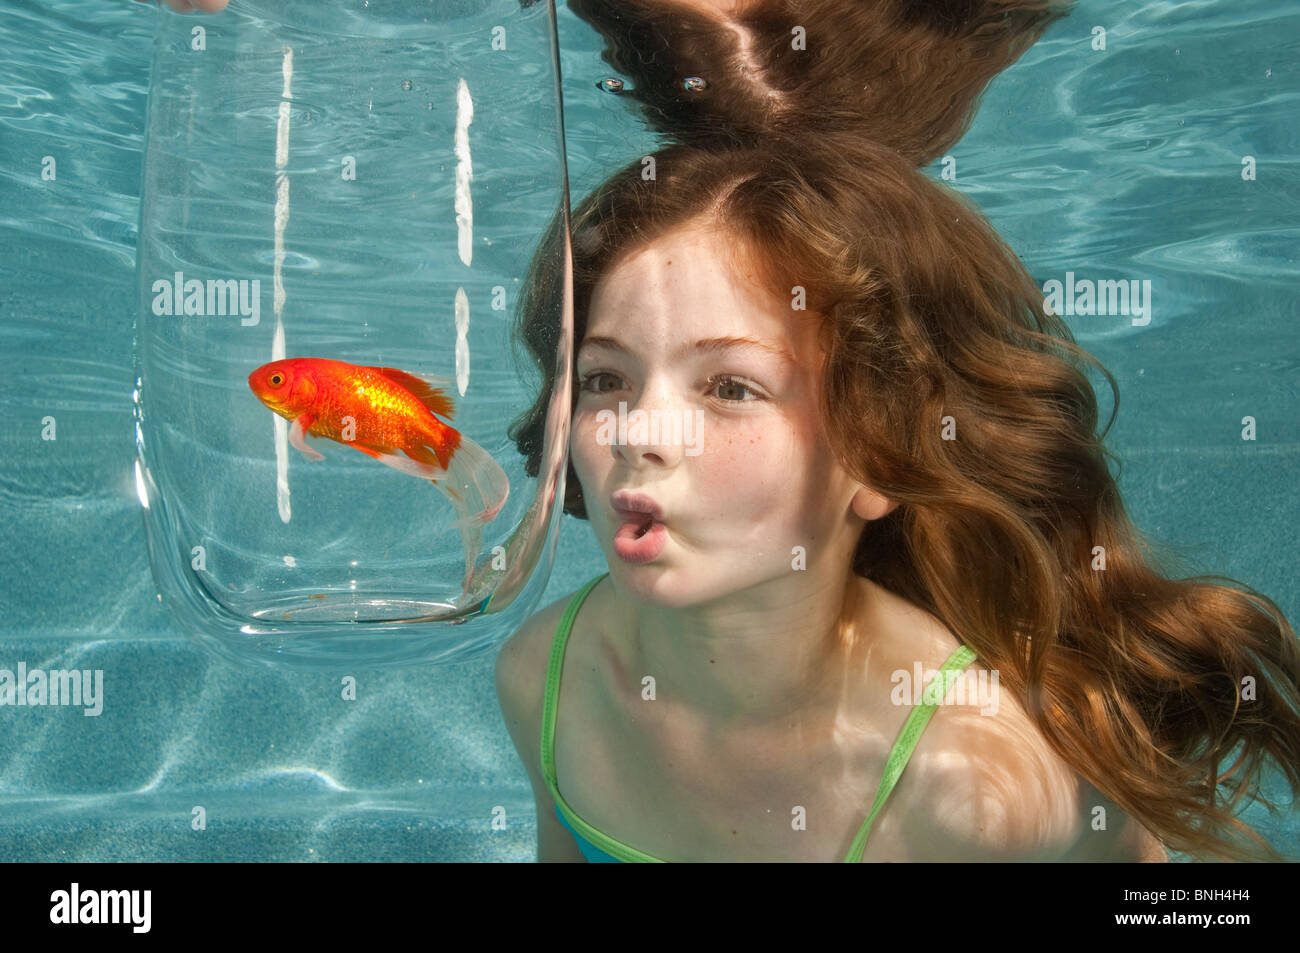 Swimming Underwater In Swimming Pool Looking At Goldfish In Glass Stock Photo 30494944 Alamy